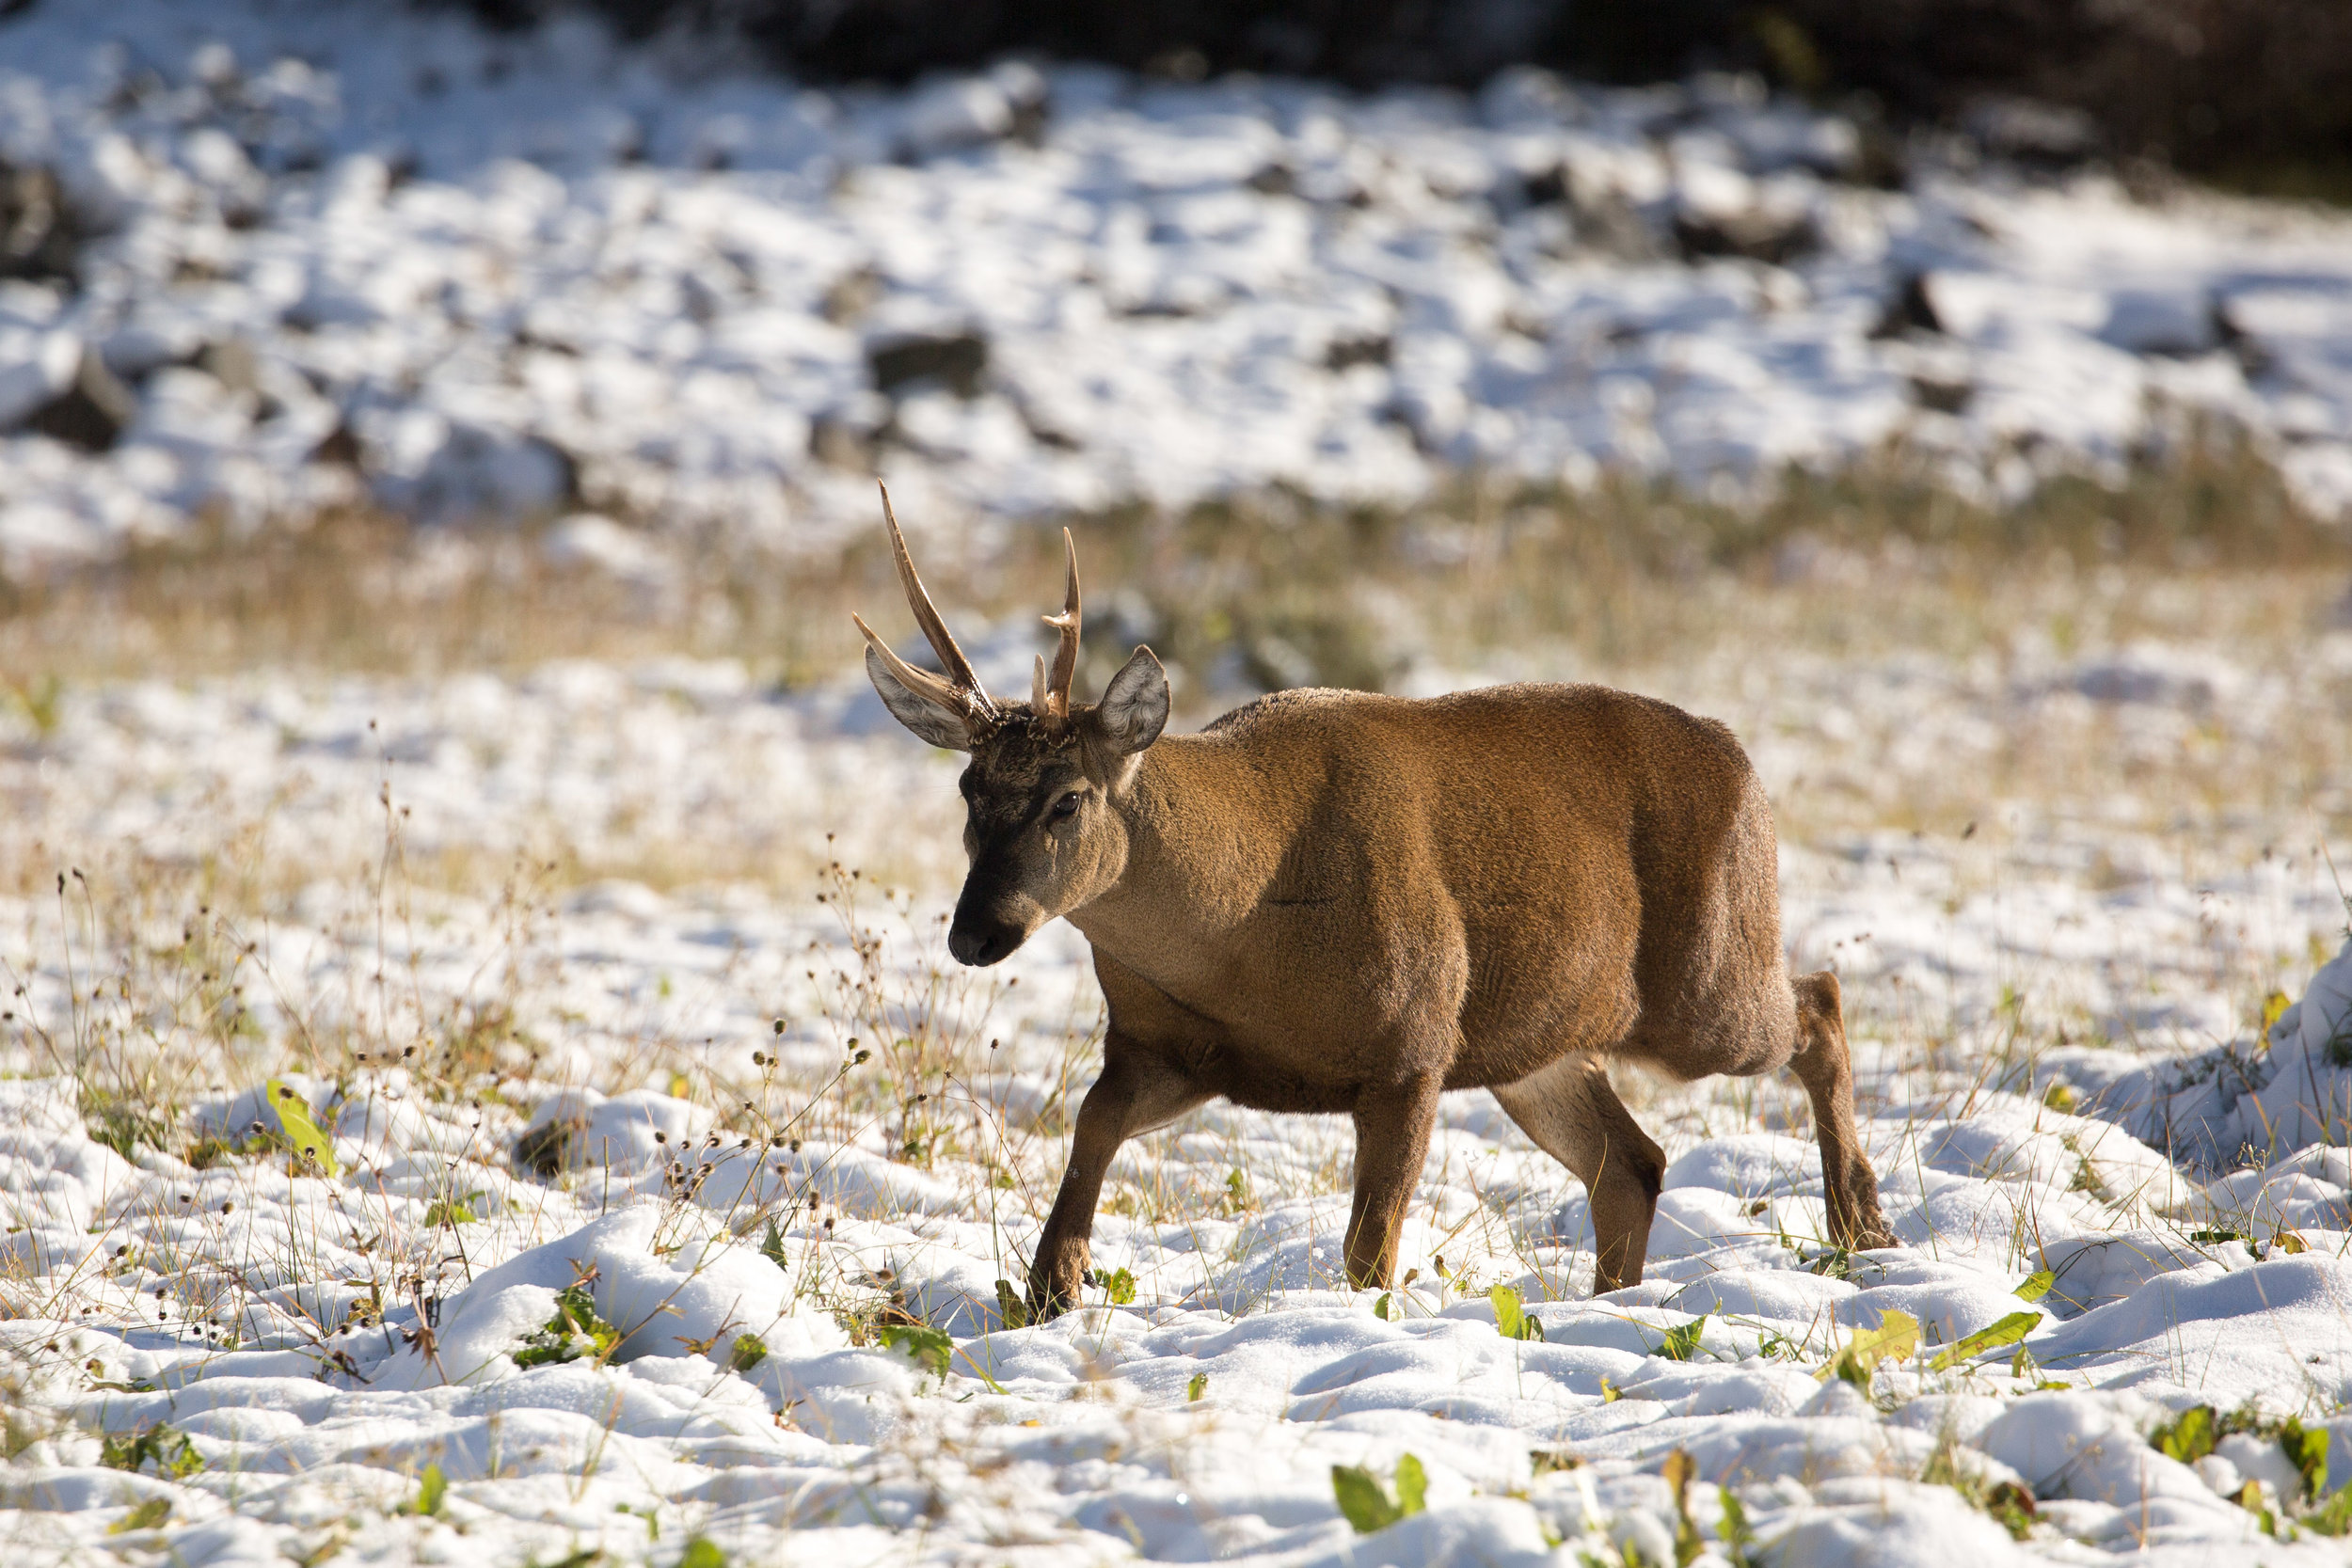 - A male huemul crossing freshly fallen snow. Photo taken at the Cerro Castillo National Reserve, the only place where we finally spotted this elusive species